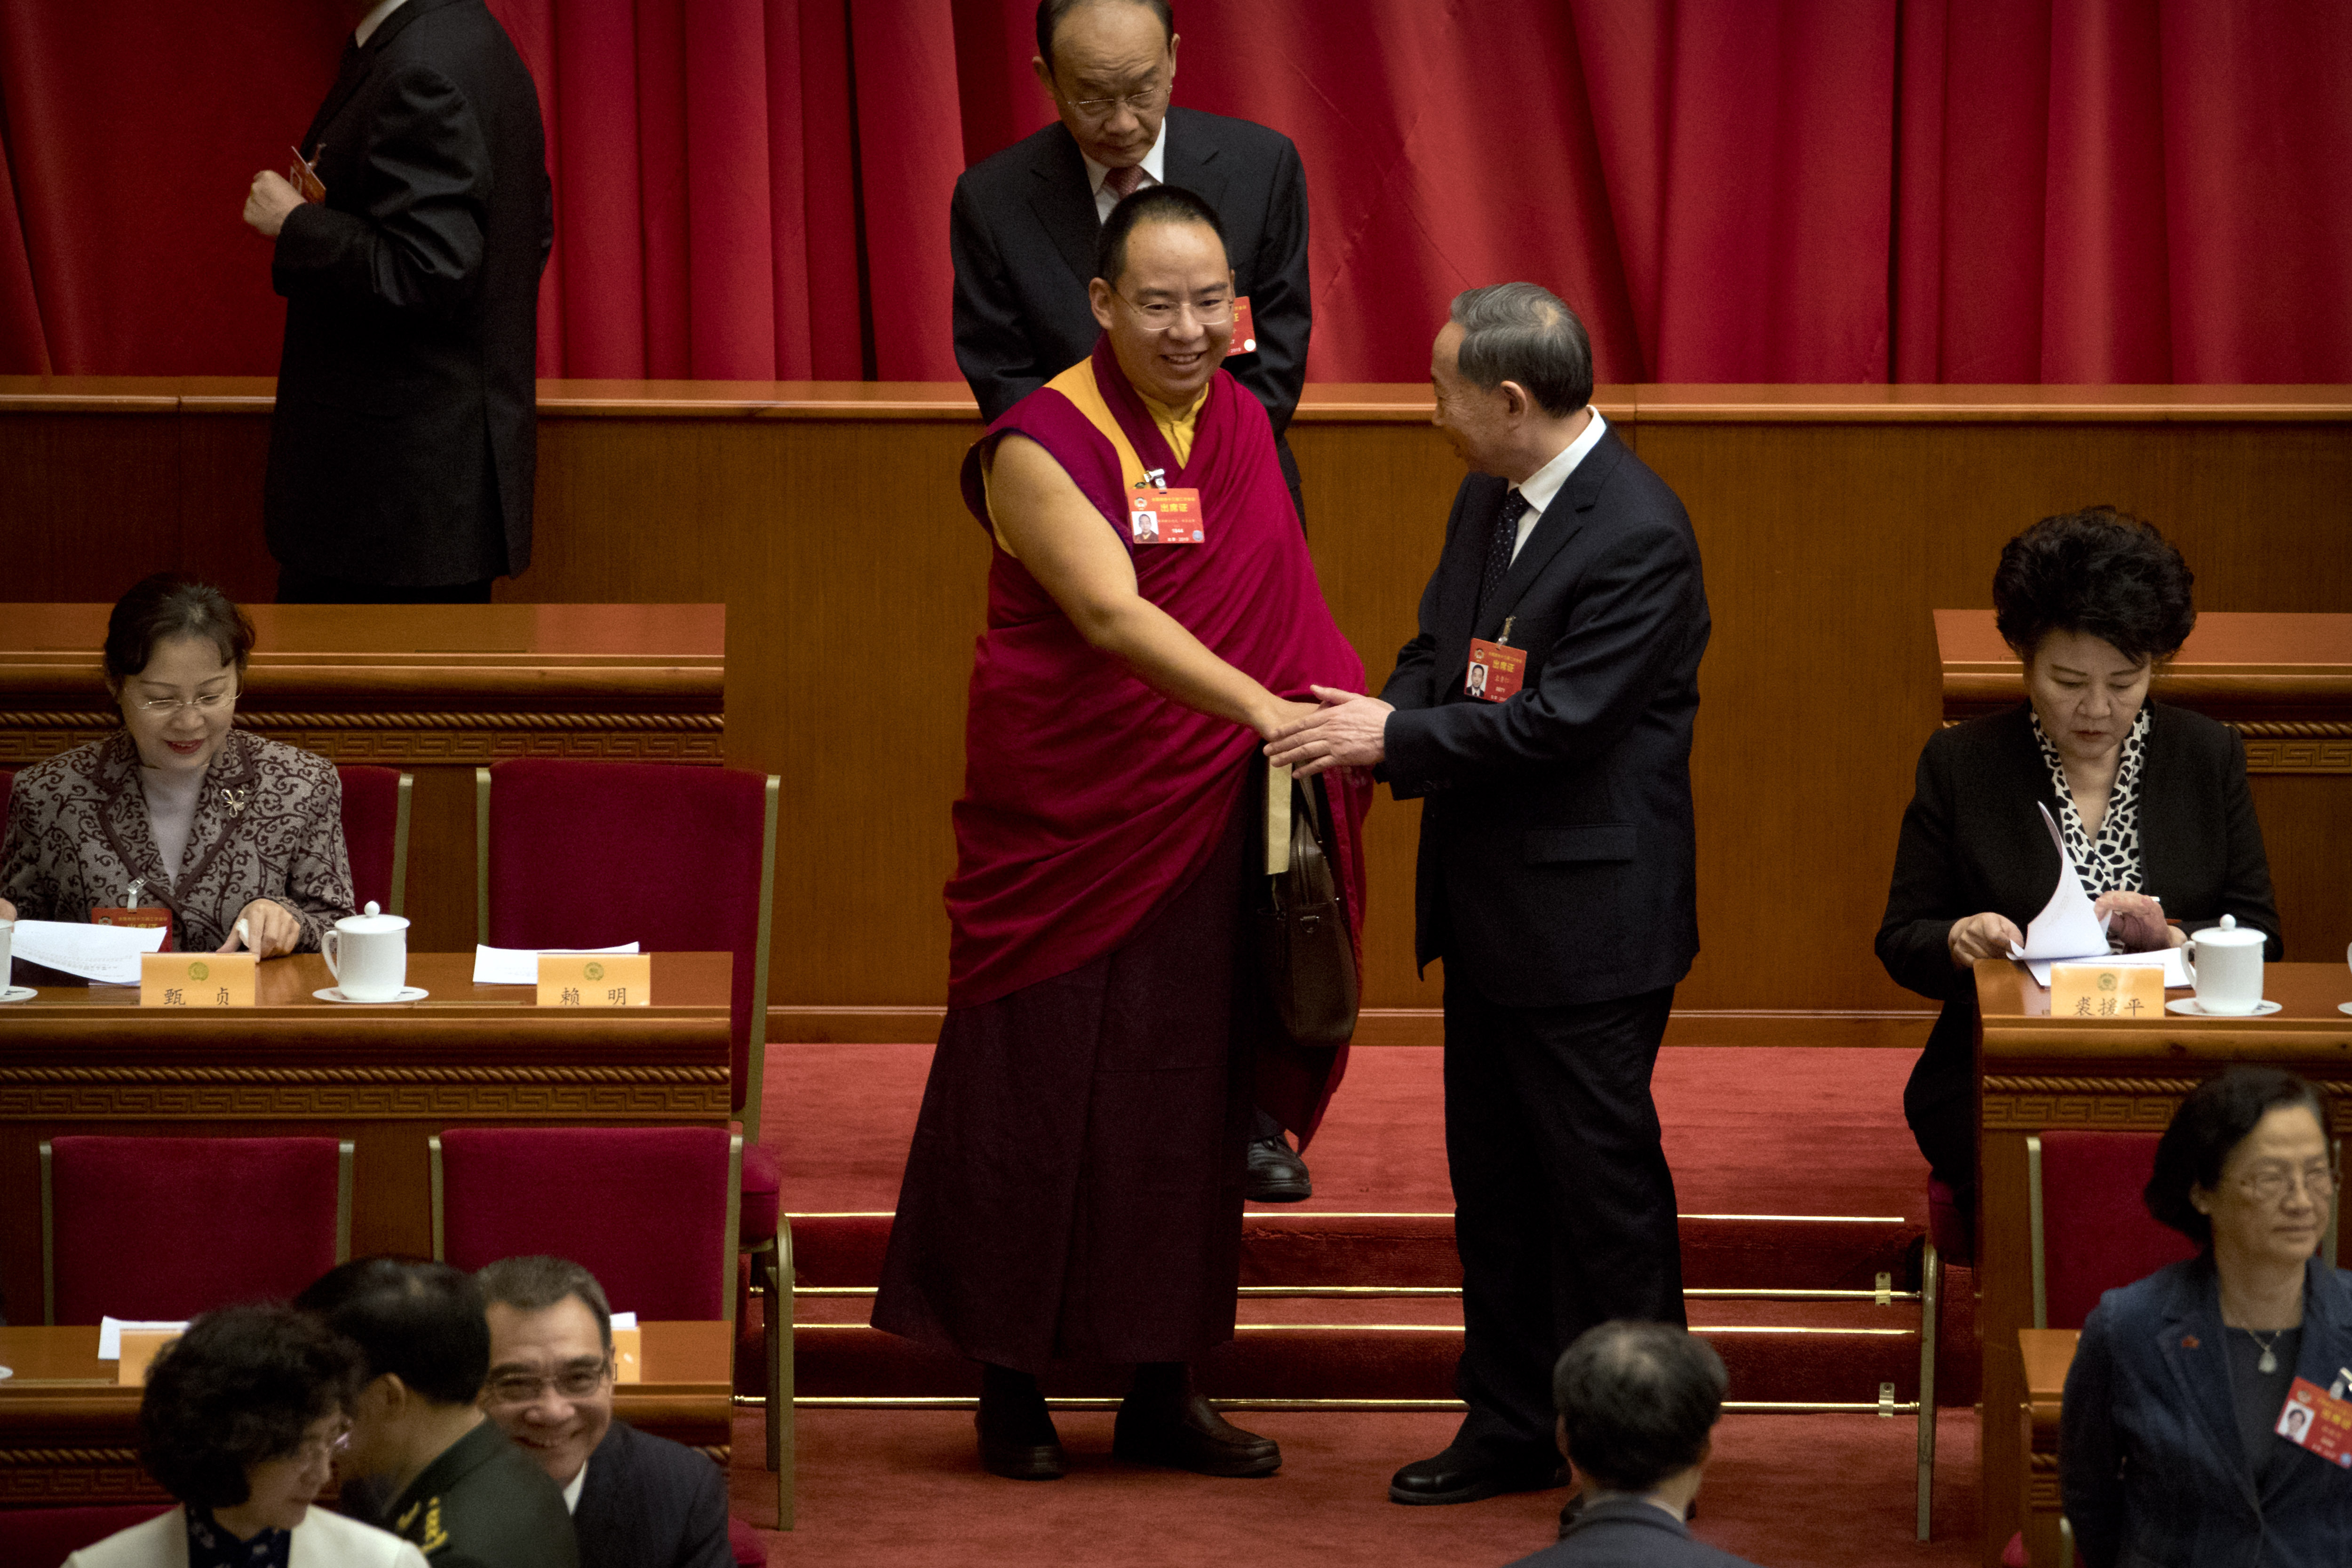 The 11th Panchen Lama Bainqen Erdini Qoigyijabu, a member of the National Committee of the Chinese People's Political Consultative Conference (CPPCC), is greeted as he arrives for the closing session of the CPPCC at the Great Hall of the People in Beijing, Wednesday, March 13, 2019. (AP Photo/Mark Schiefelbein)